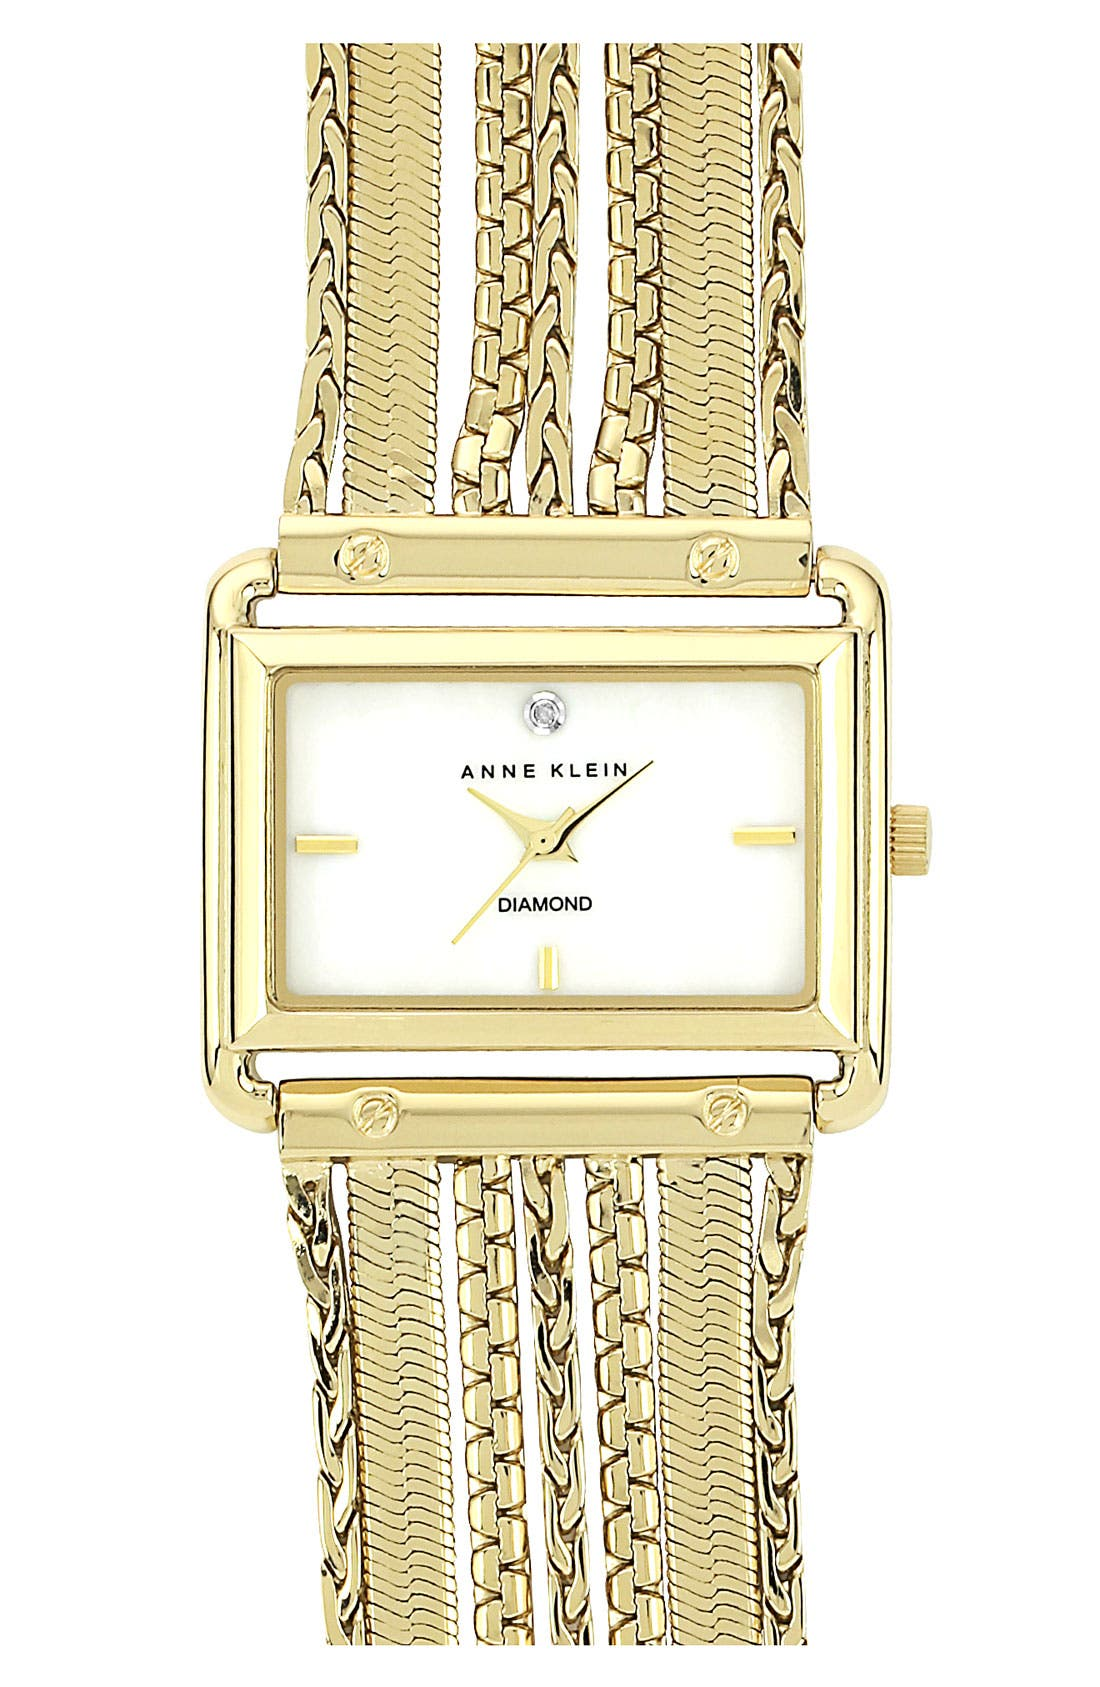 Alternate Image 1 Selected - Anne Klein Square Chain Bracelet Watch